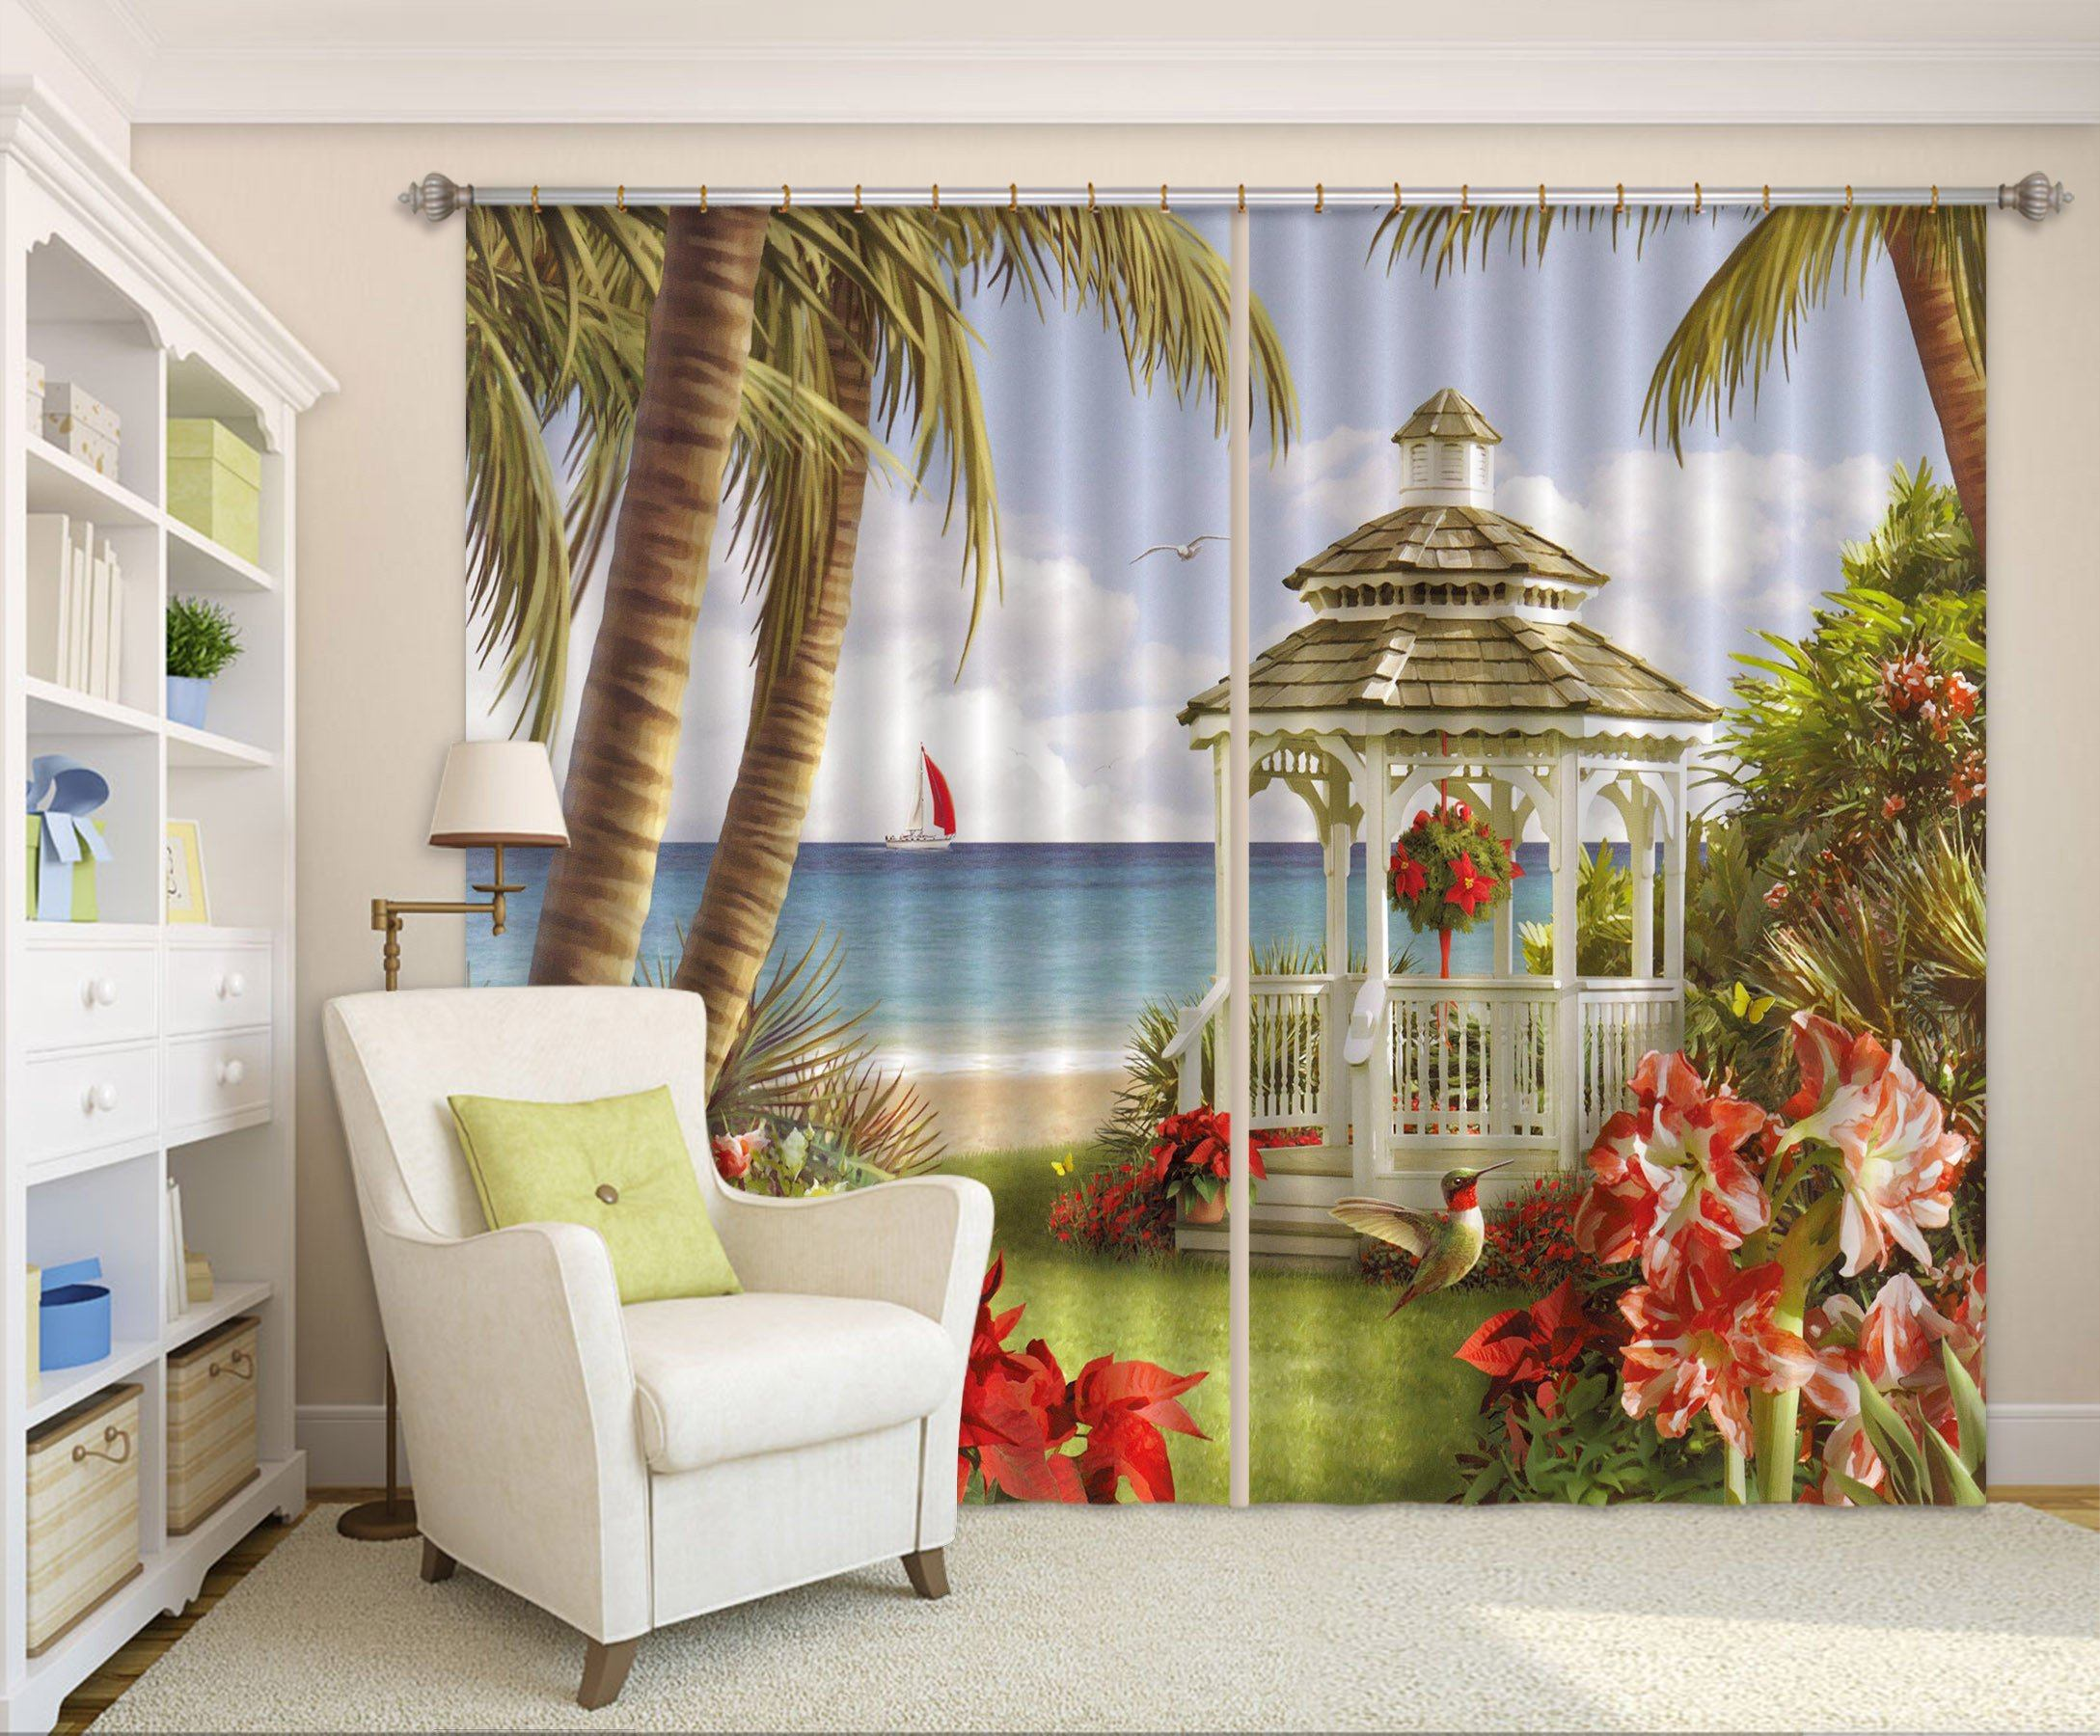 3D Beach Pavilion Curtains Drapes